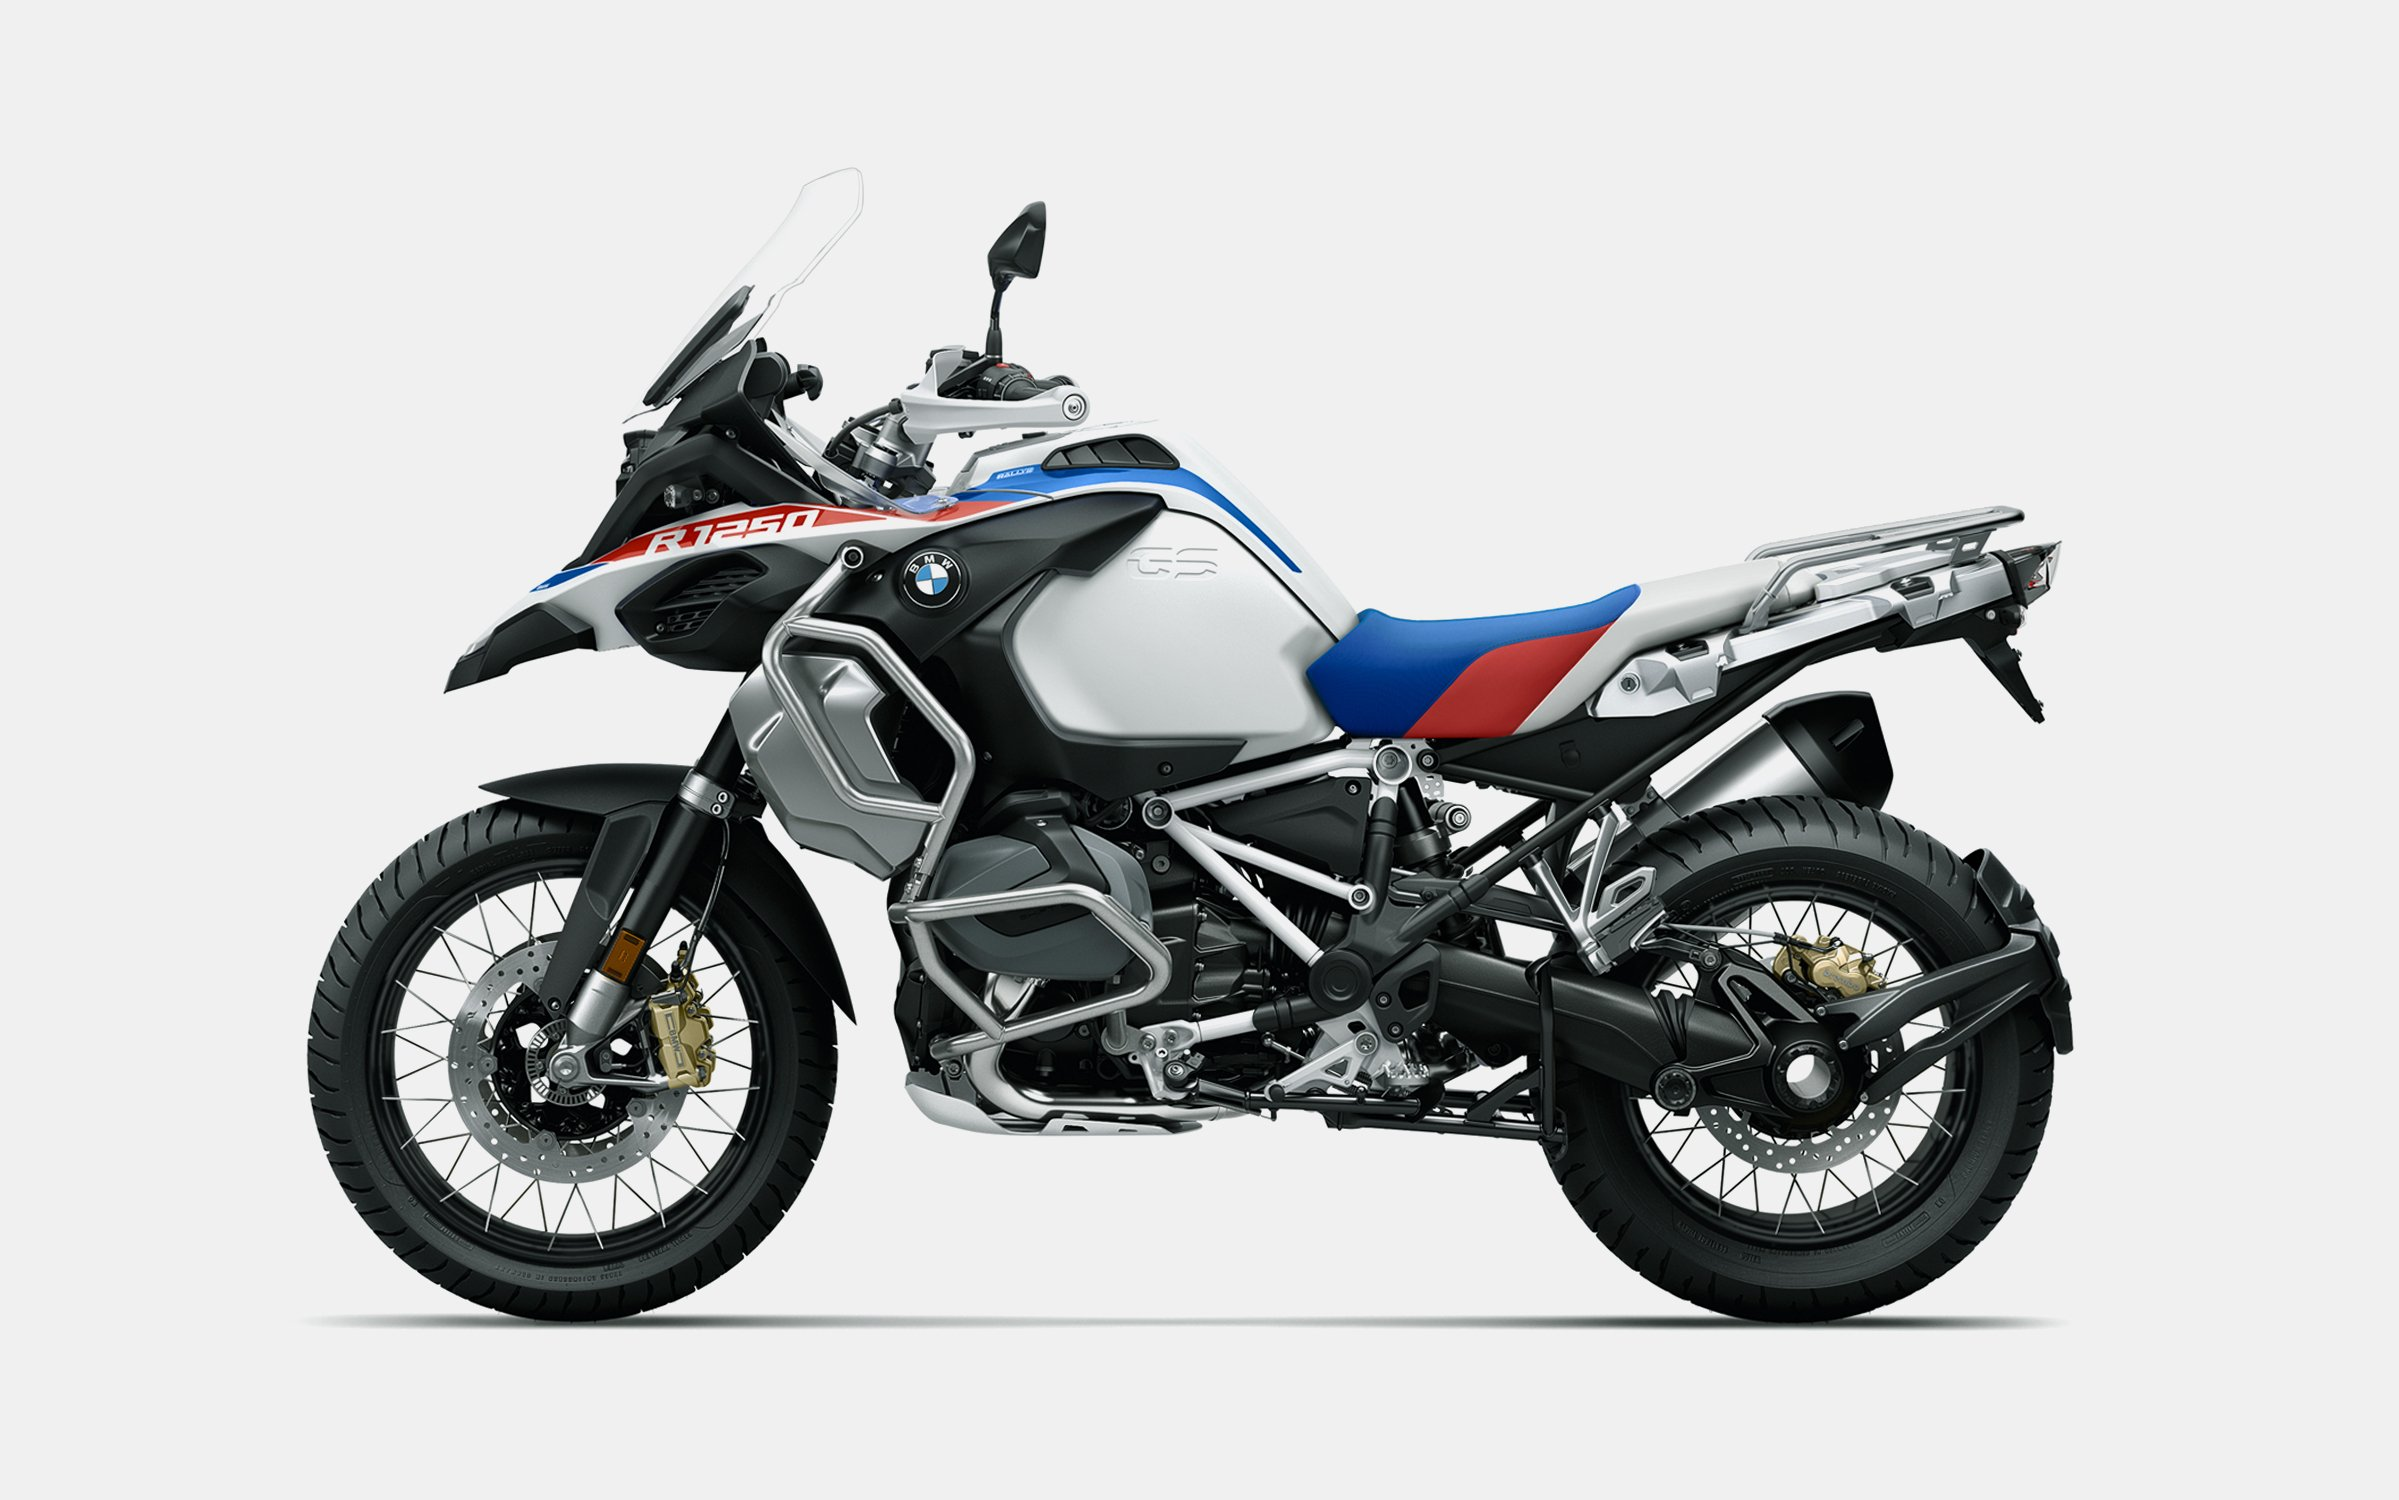 2021 BMW R 1250 GS Adventure Motorcycle